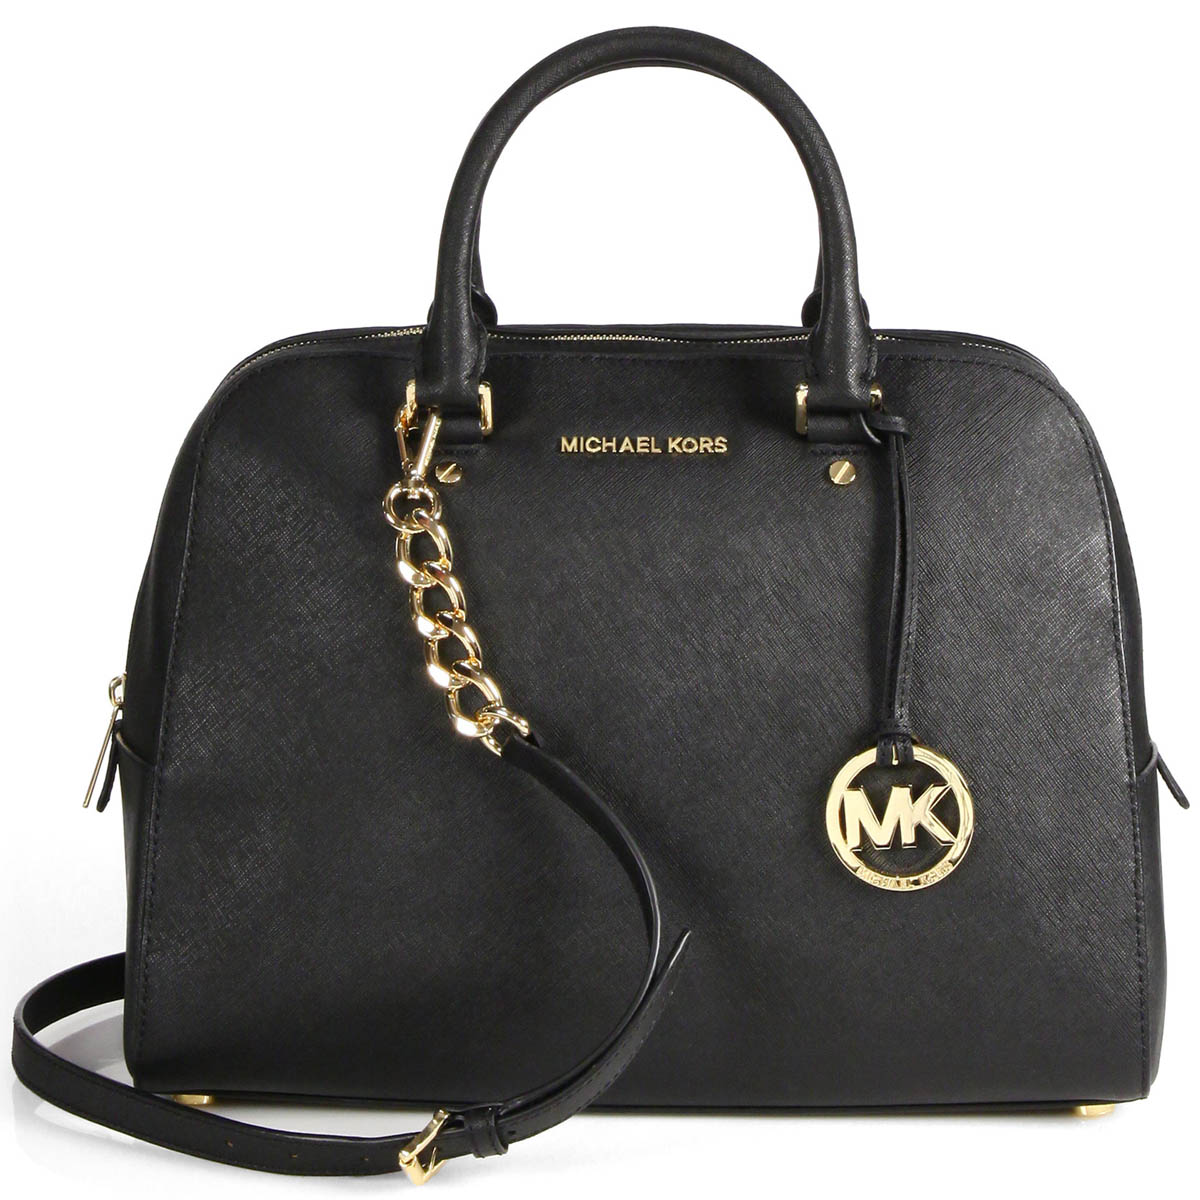 Michael Kors Jet Set Travel Medium Leather Satchel Black # 38H6GTVS2L